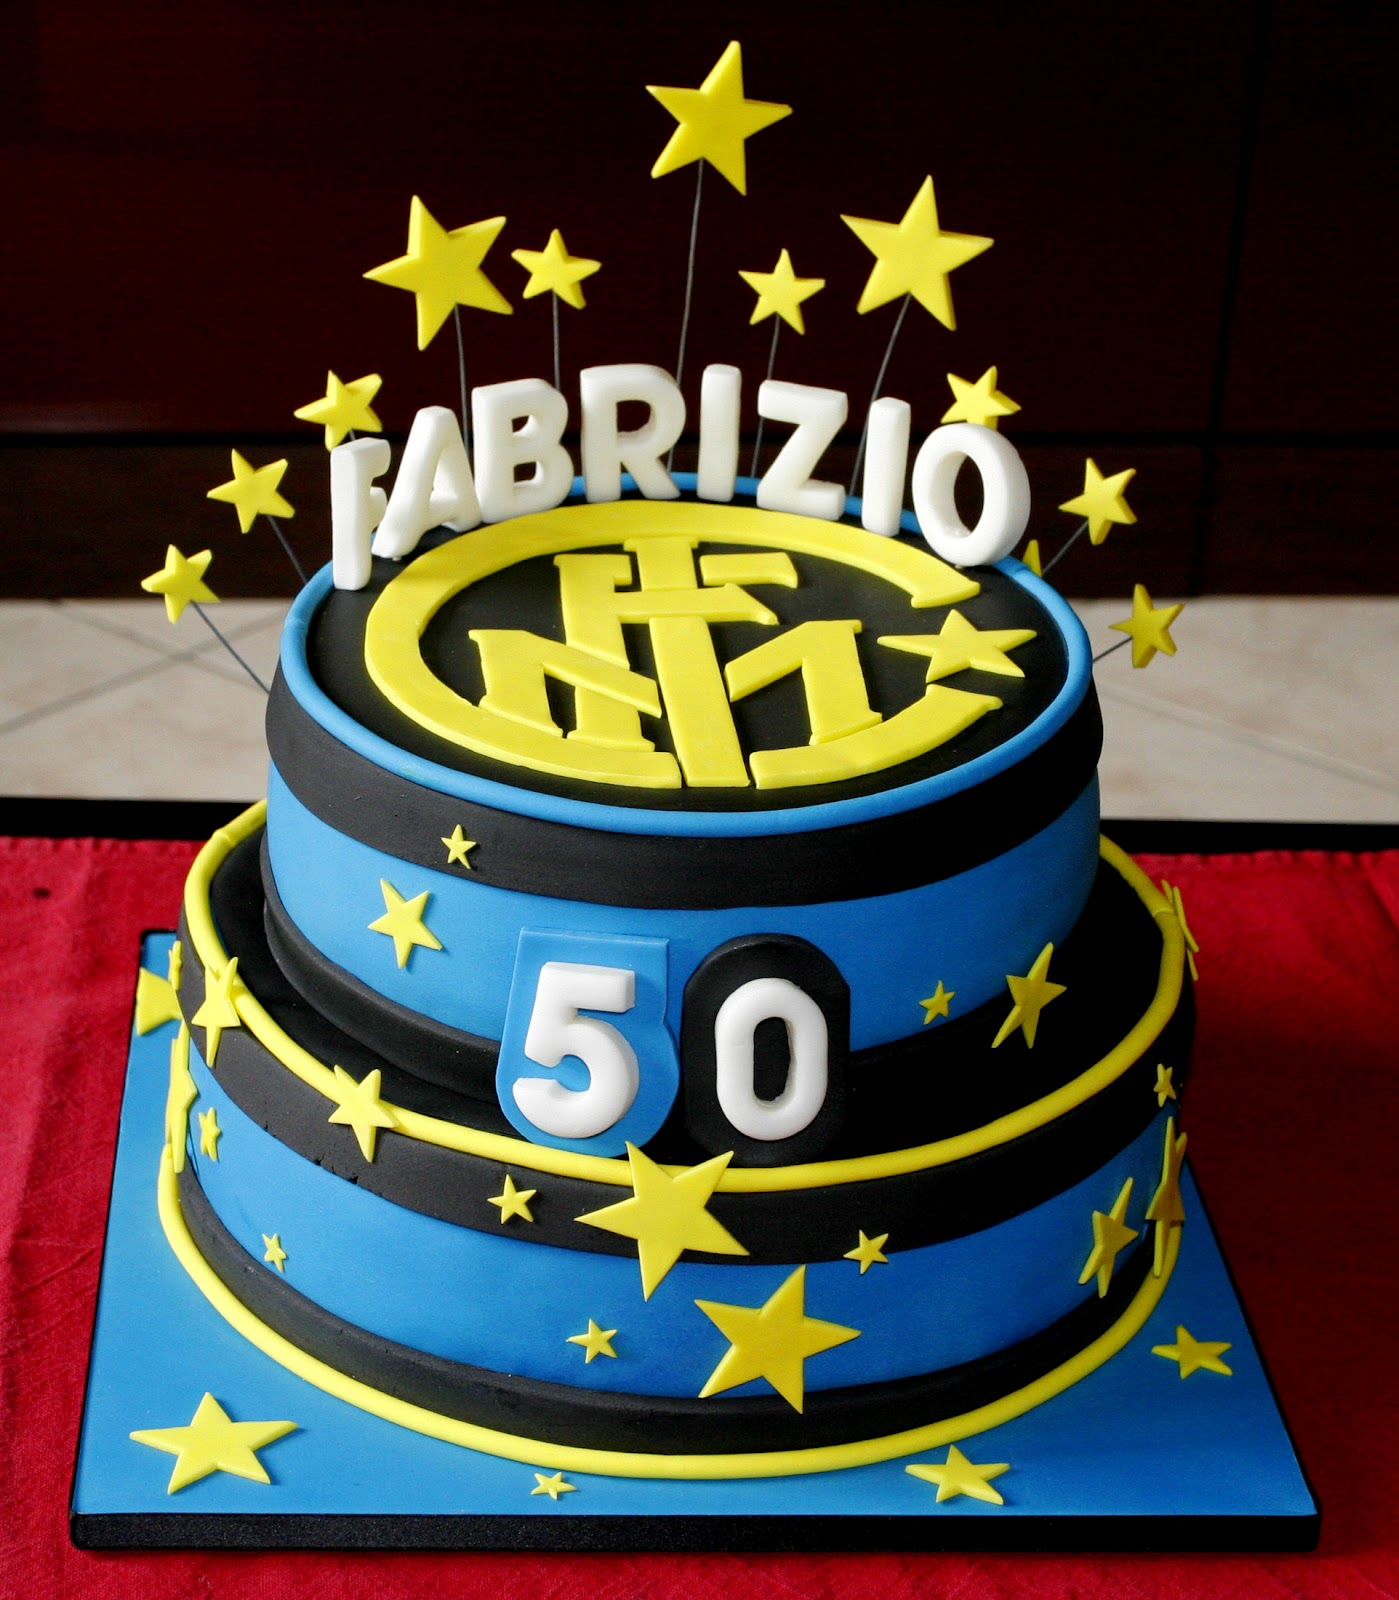 Top Pazza Inter amala! | Ma che torte RQ52